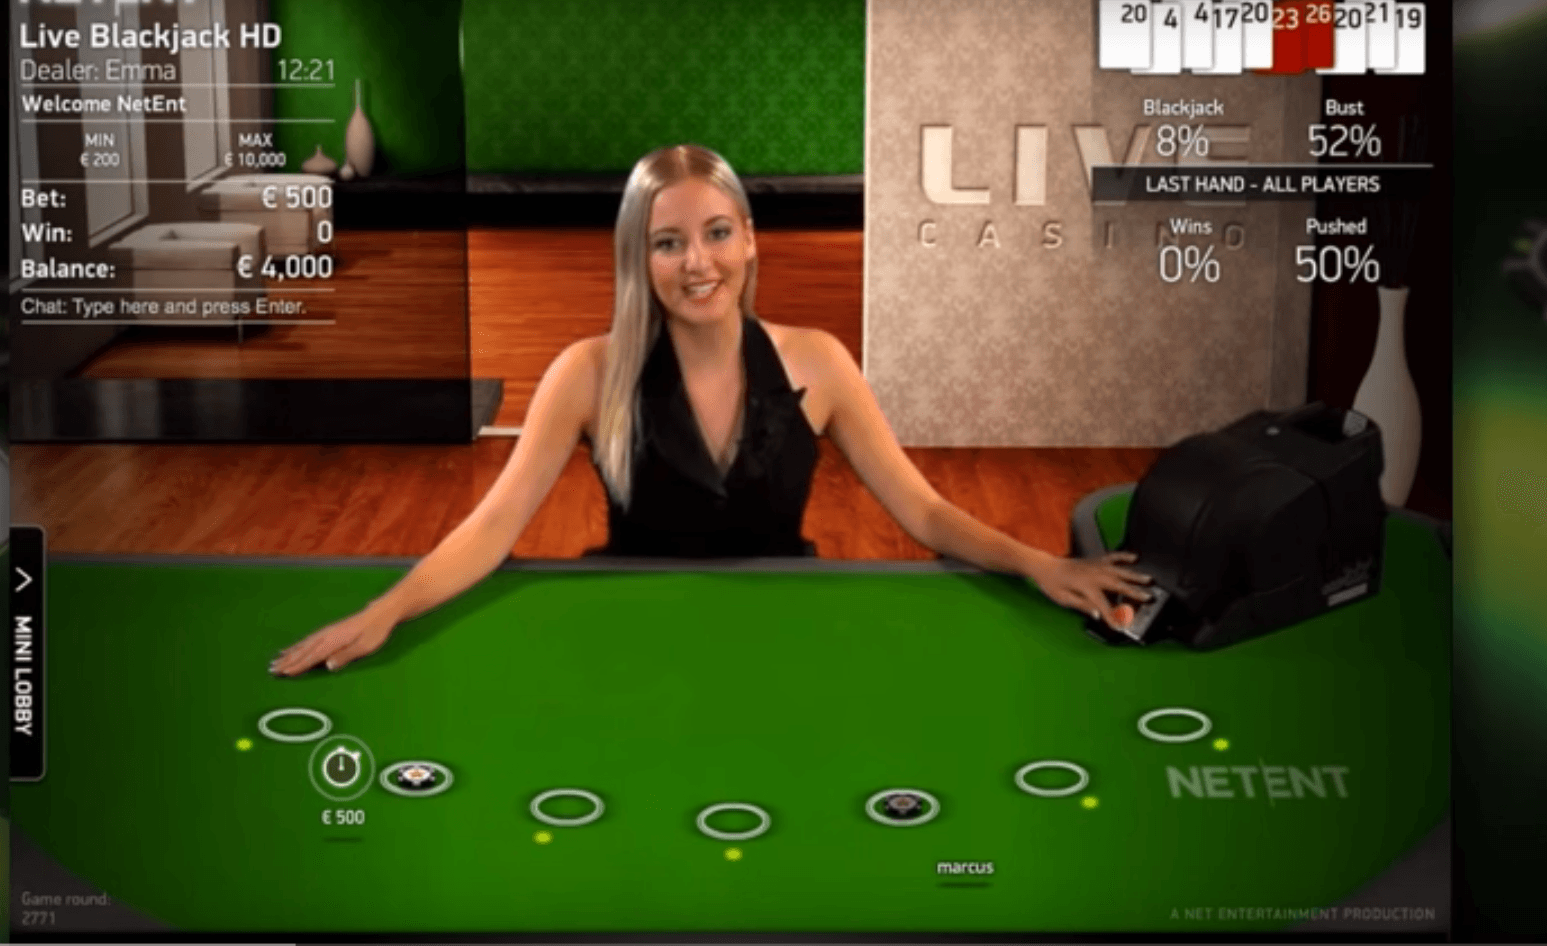 blackjack online casino sizlling hot